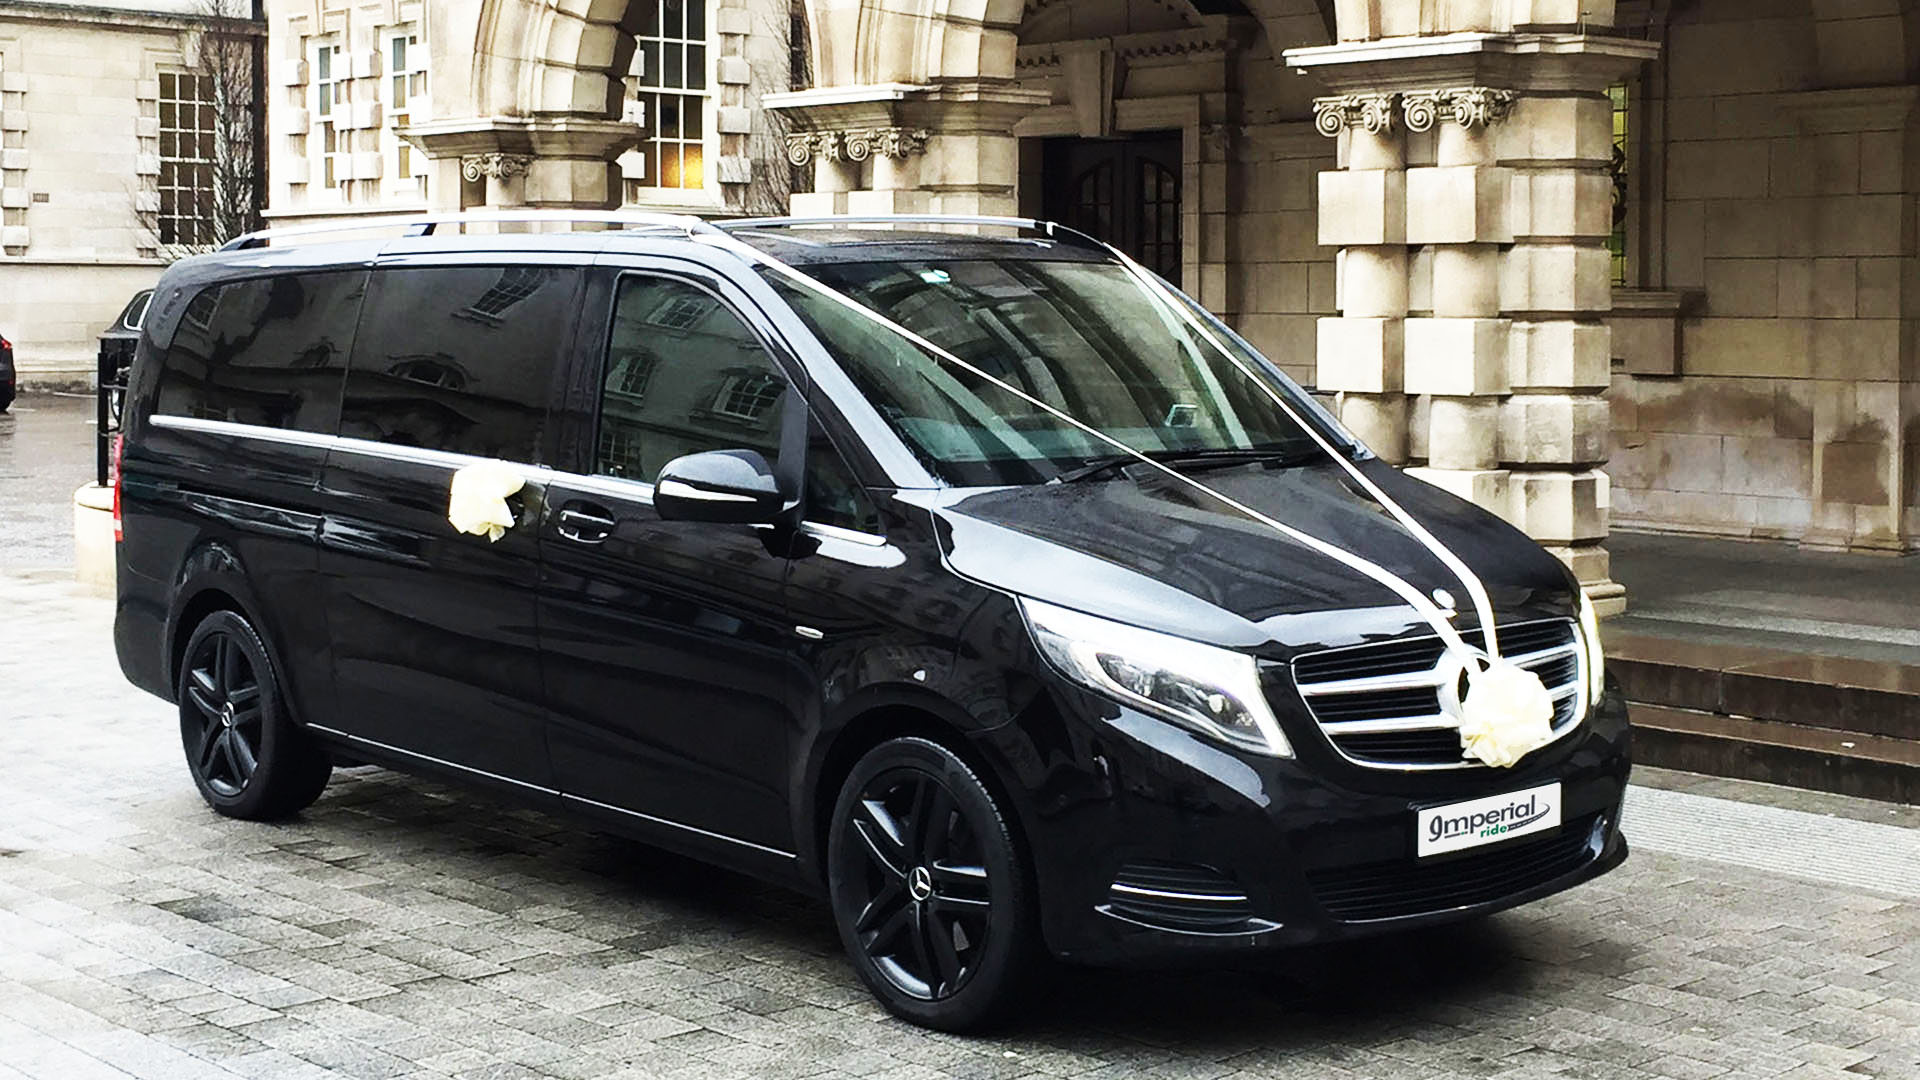 v-class-wedding-hire-in-greenwich